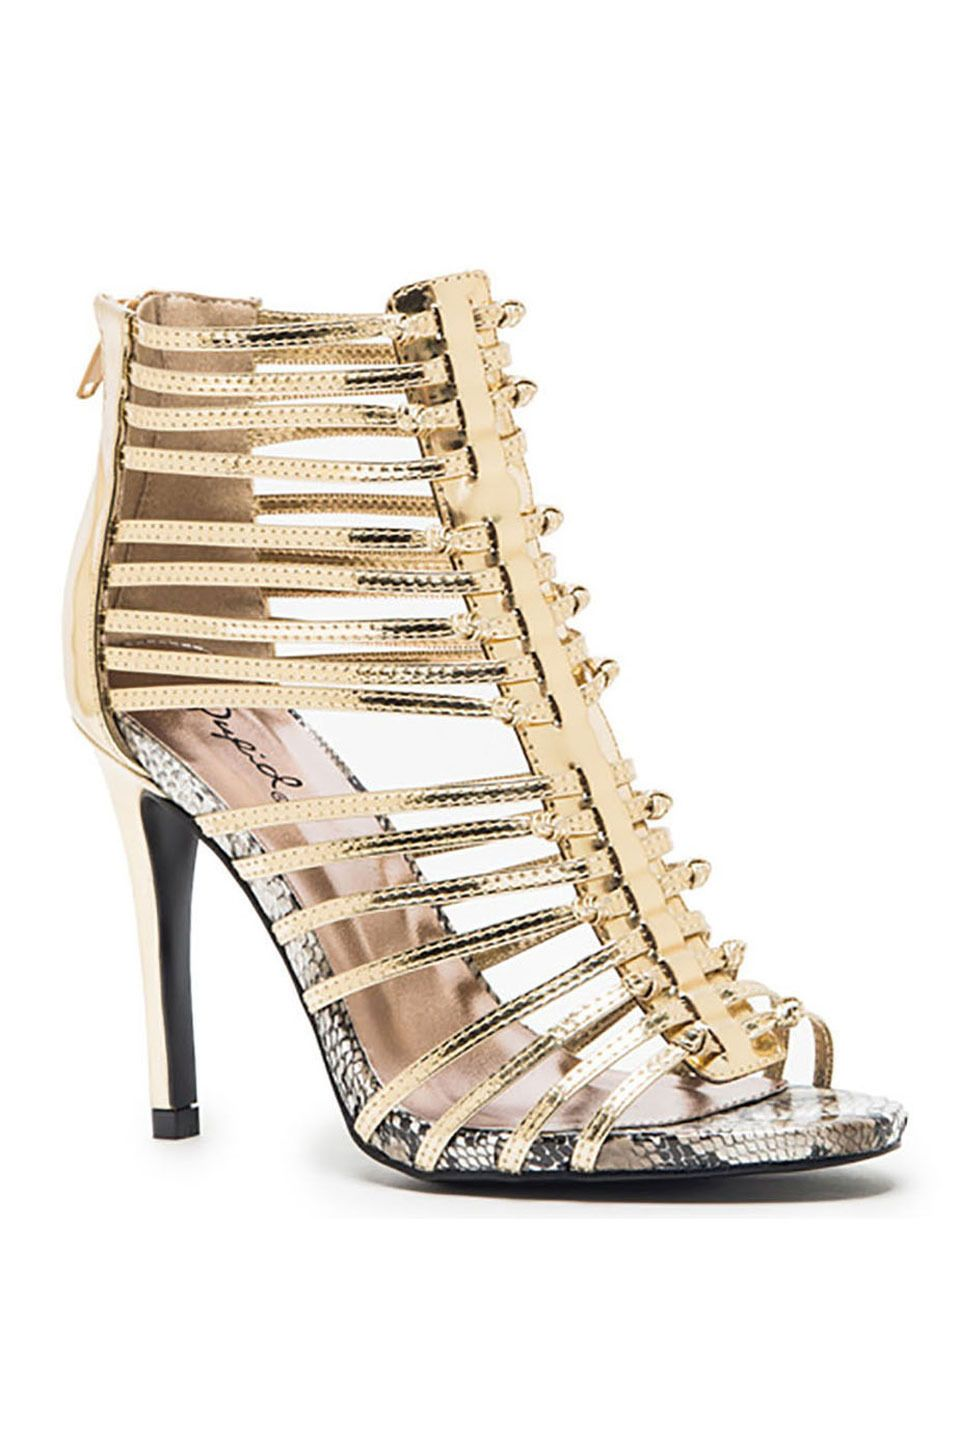 Qupid - Grammy-23 Strappy Sandals in Gold $29.99